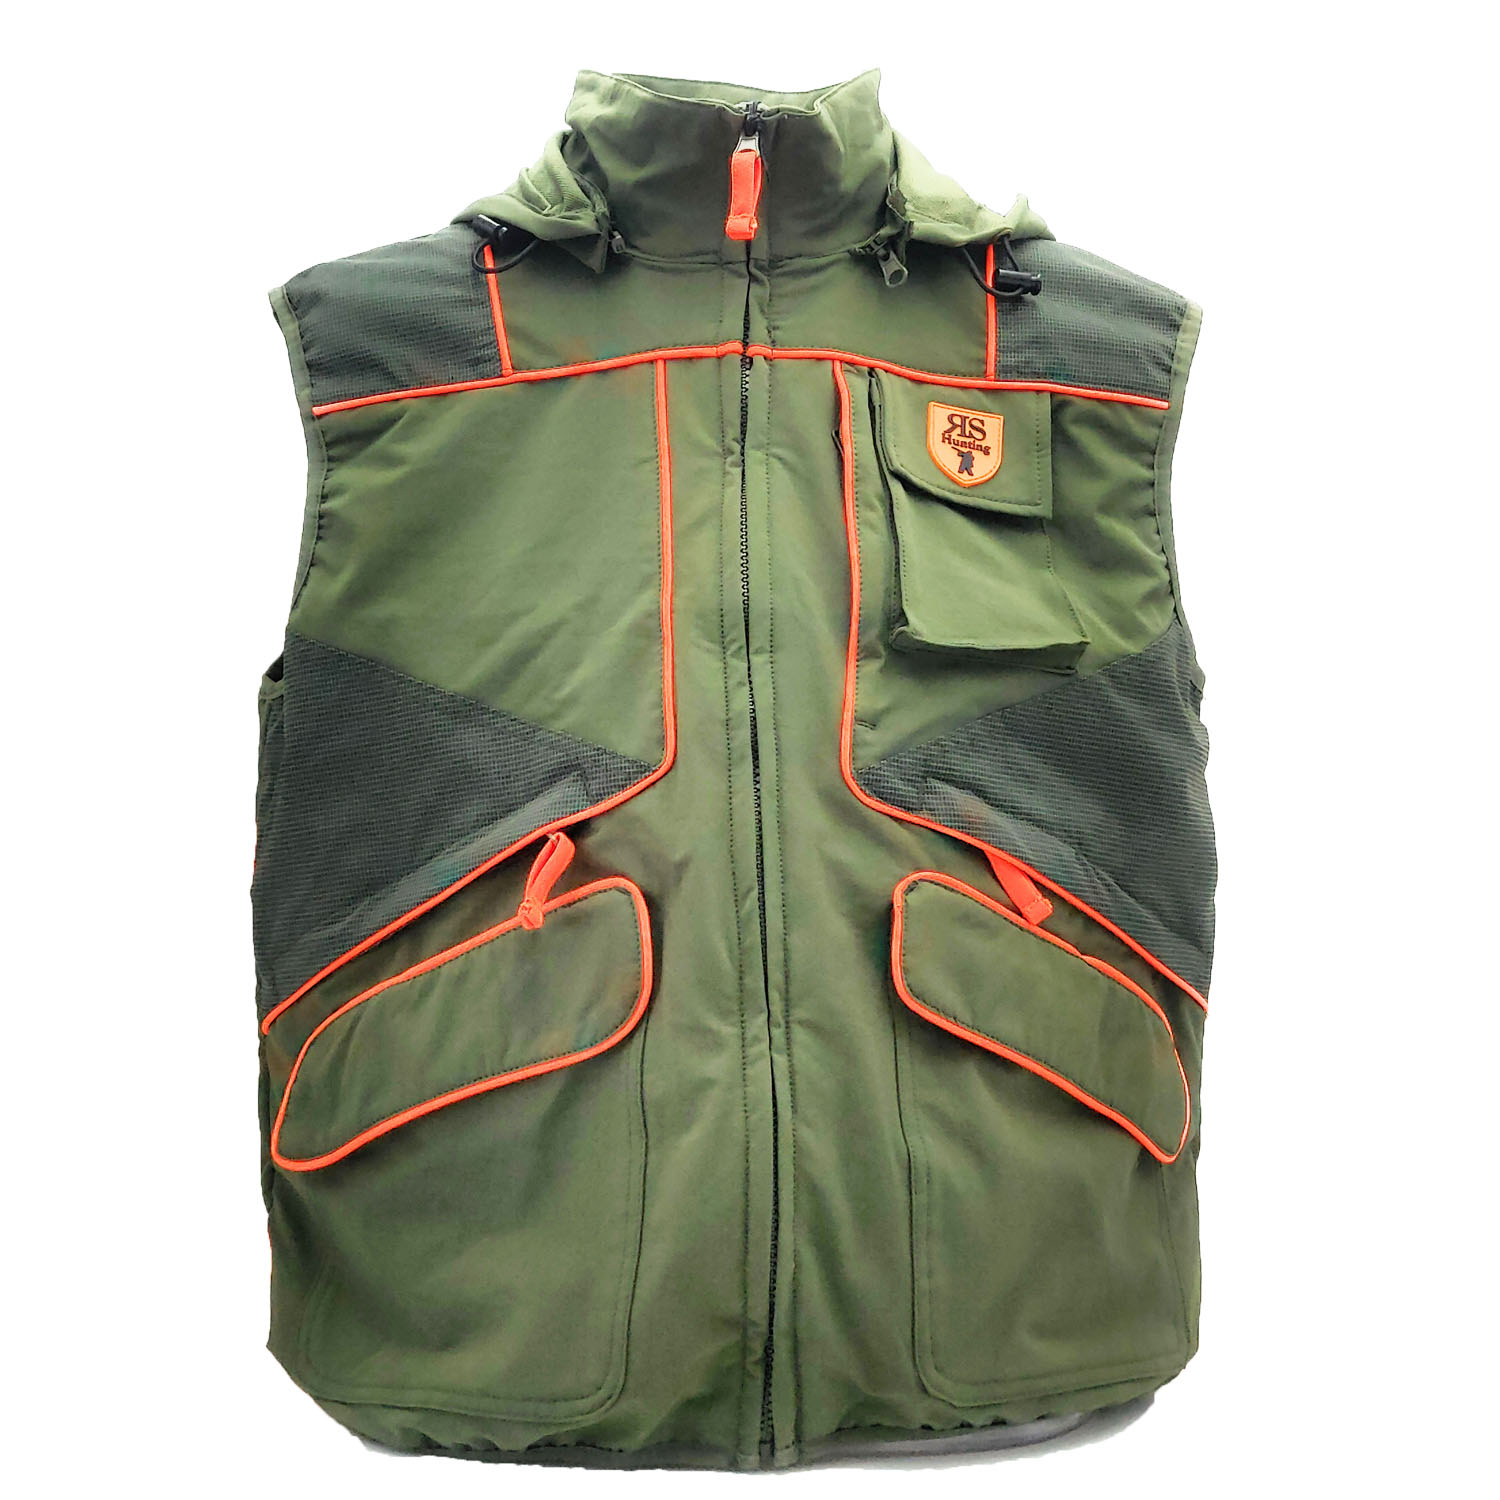 Vest hunting green elastic pockets waterproof safety cap man